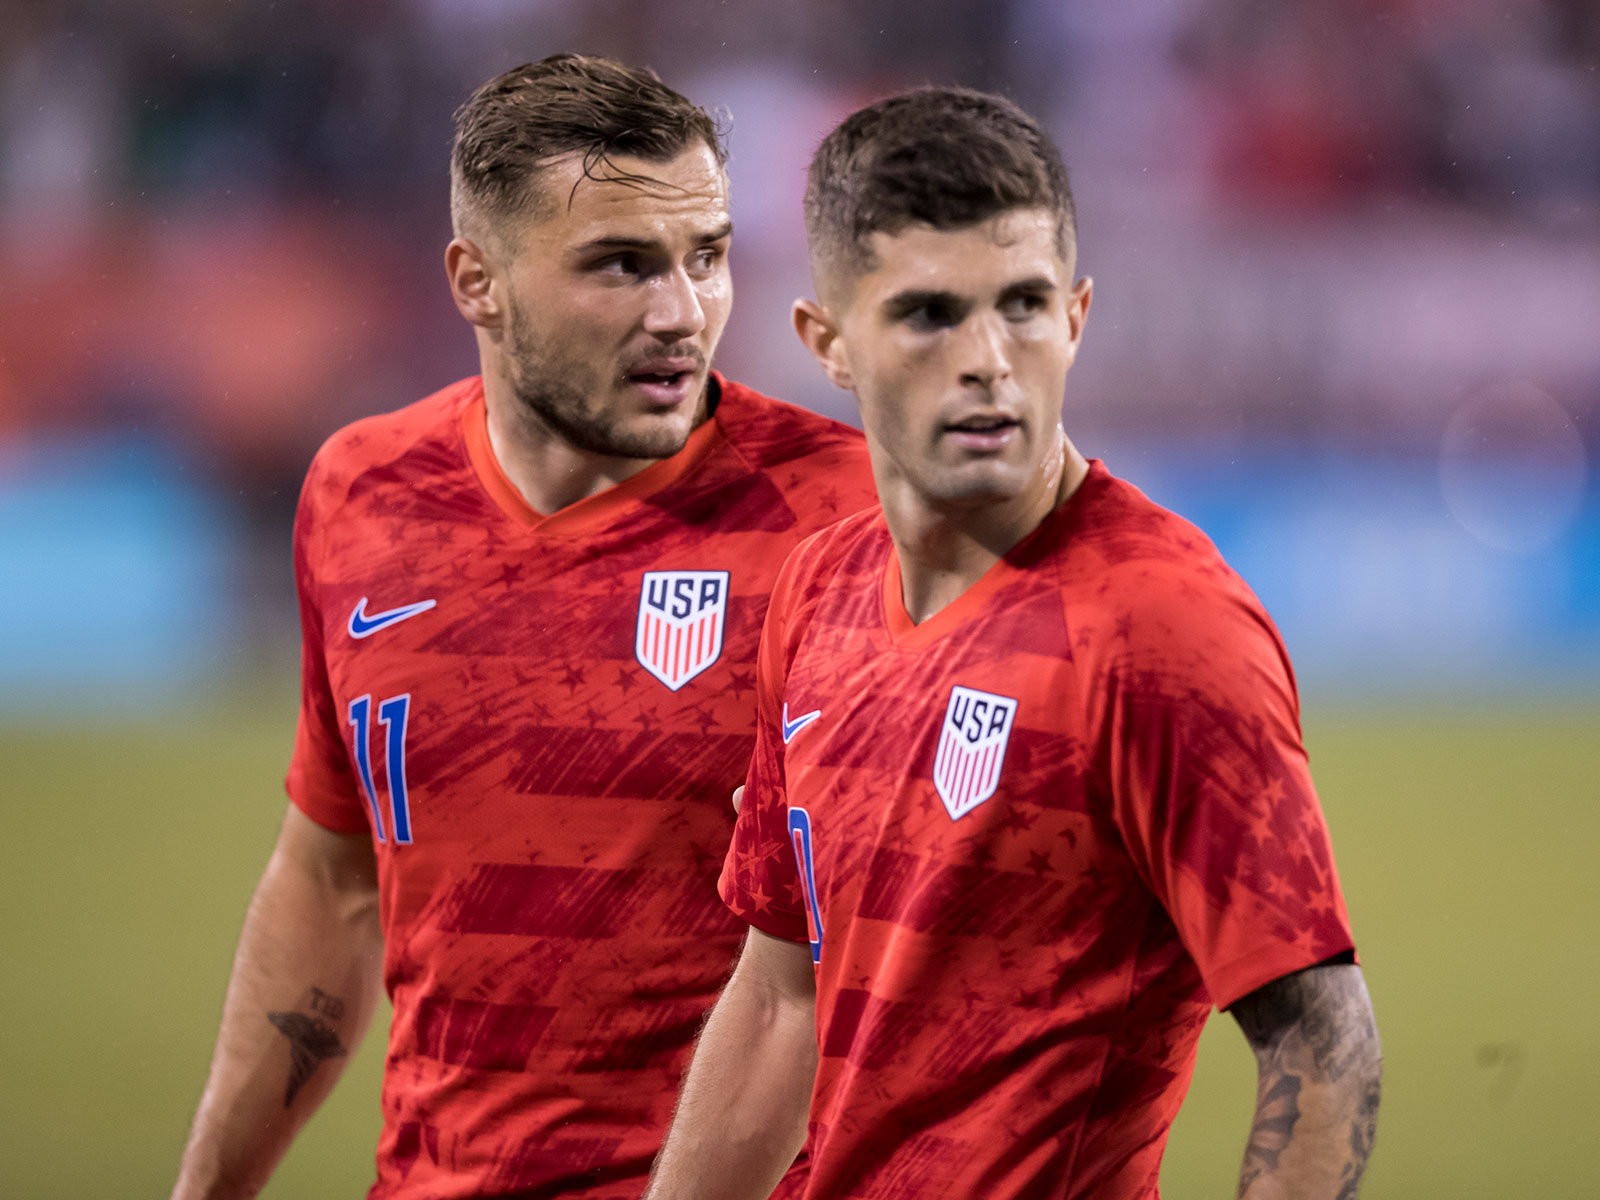 Christian Pulisic and the USA fell to Mexico in a friendly